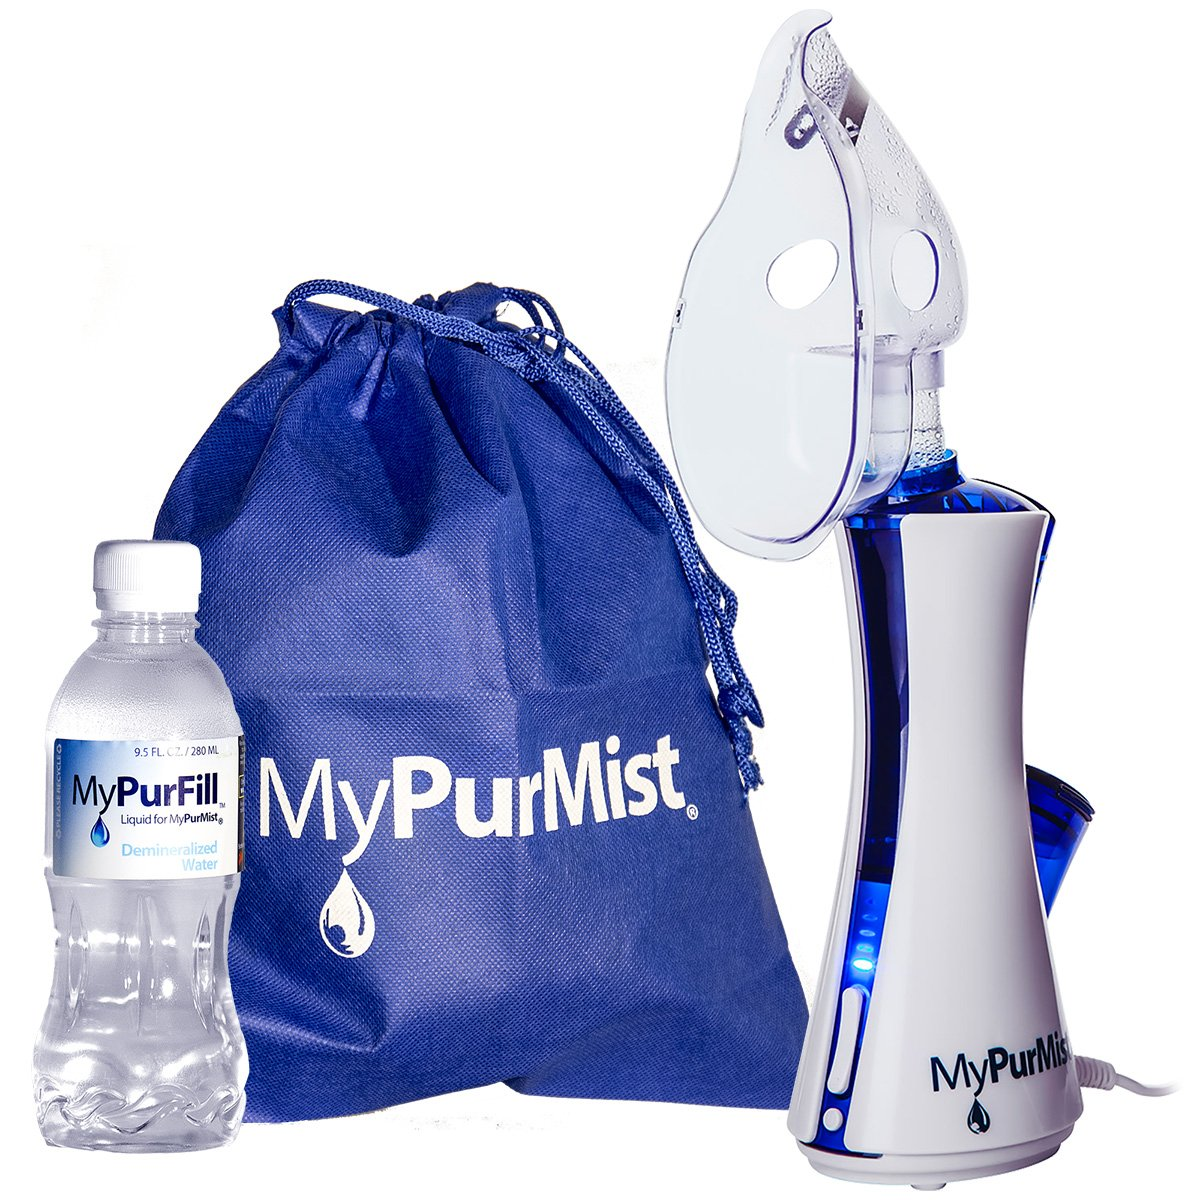 MyPurMist Handheld Personal Steam Inhaler and Vaporizer -- Classic Kit - retail box by MyPurMist